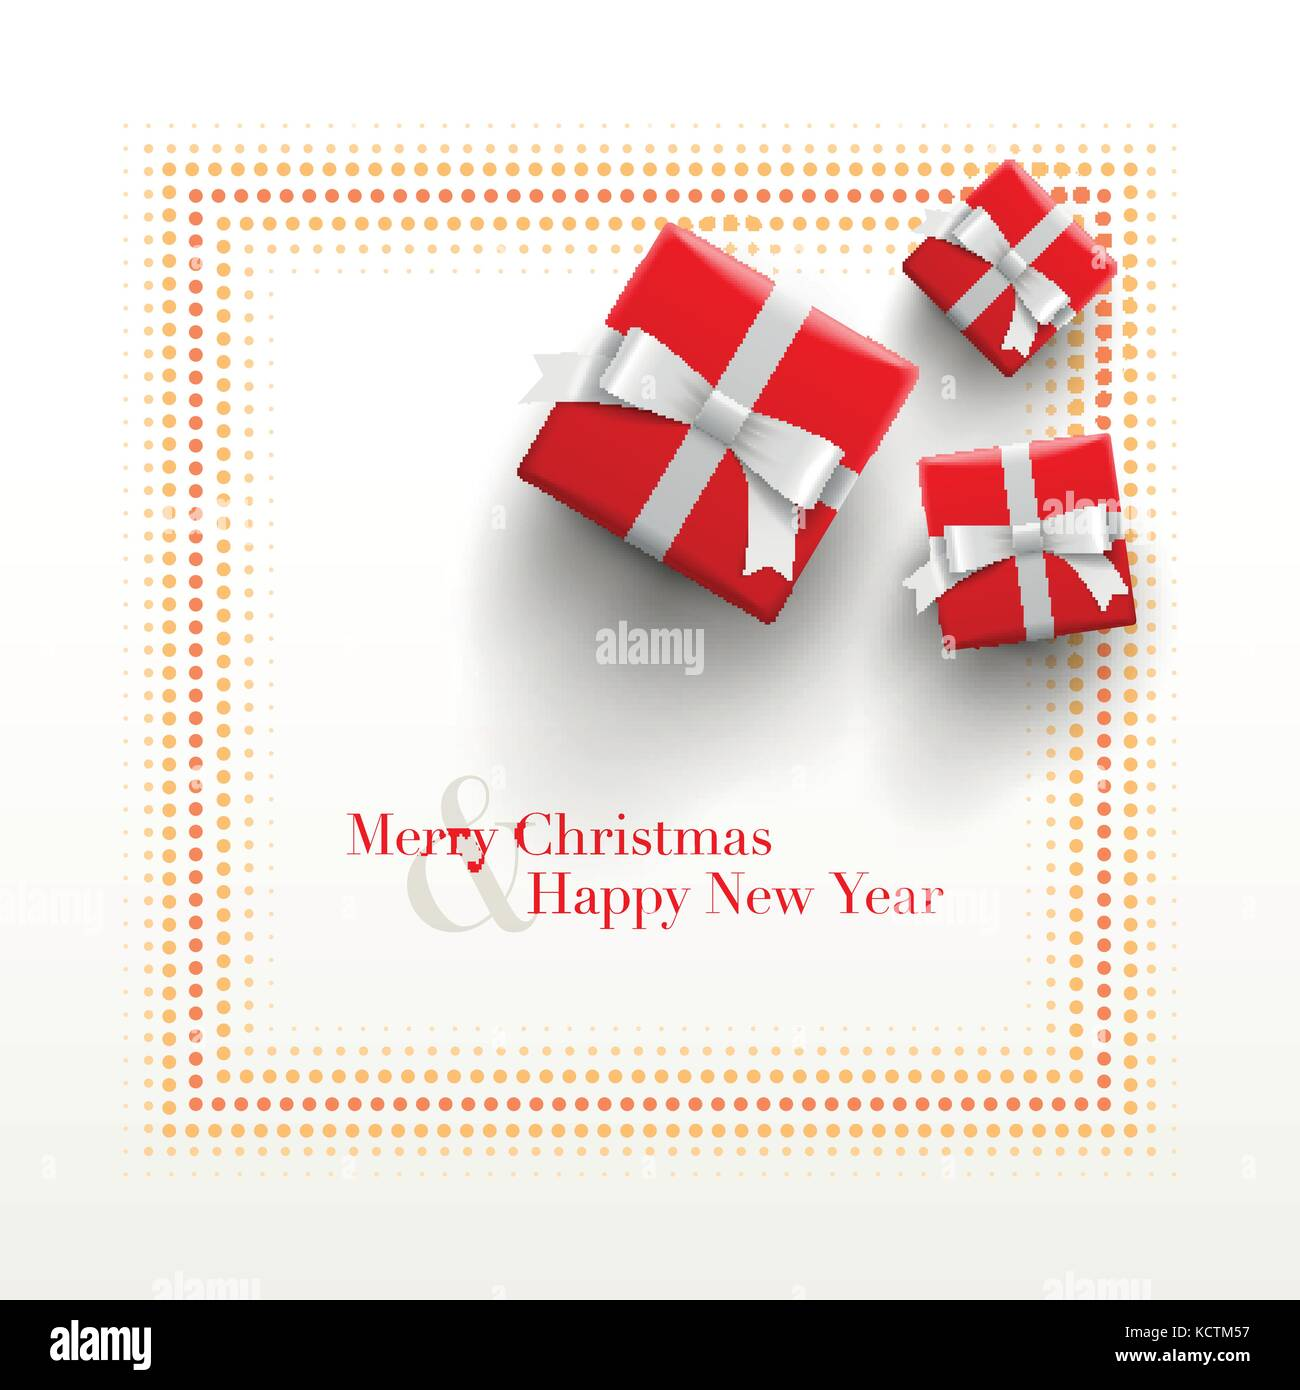 merry christmas and happy new year card design red gift boxes with dotted frame on white background